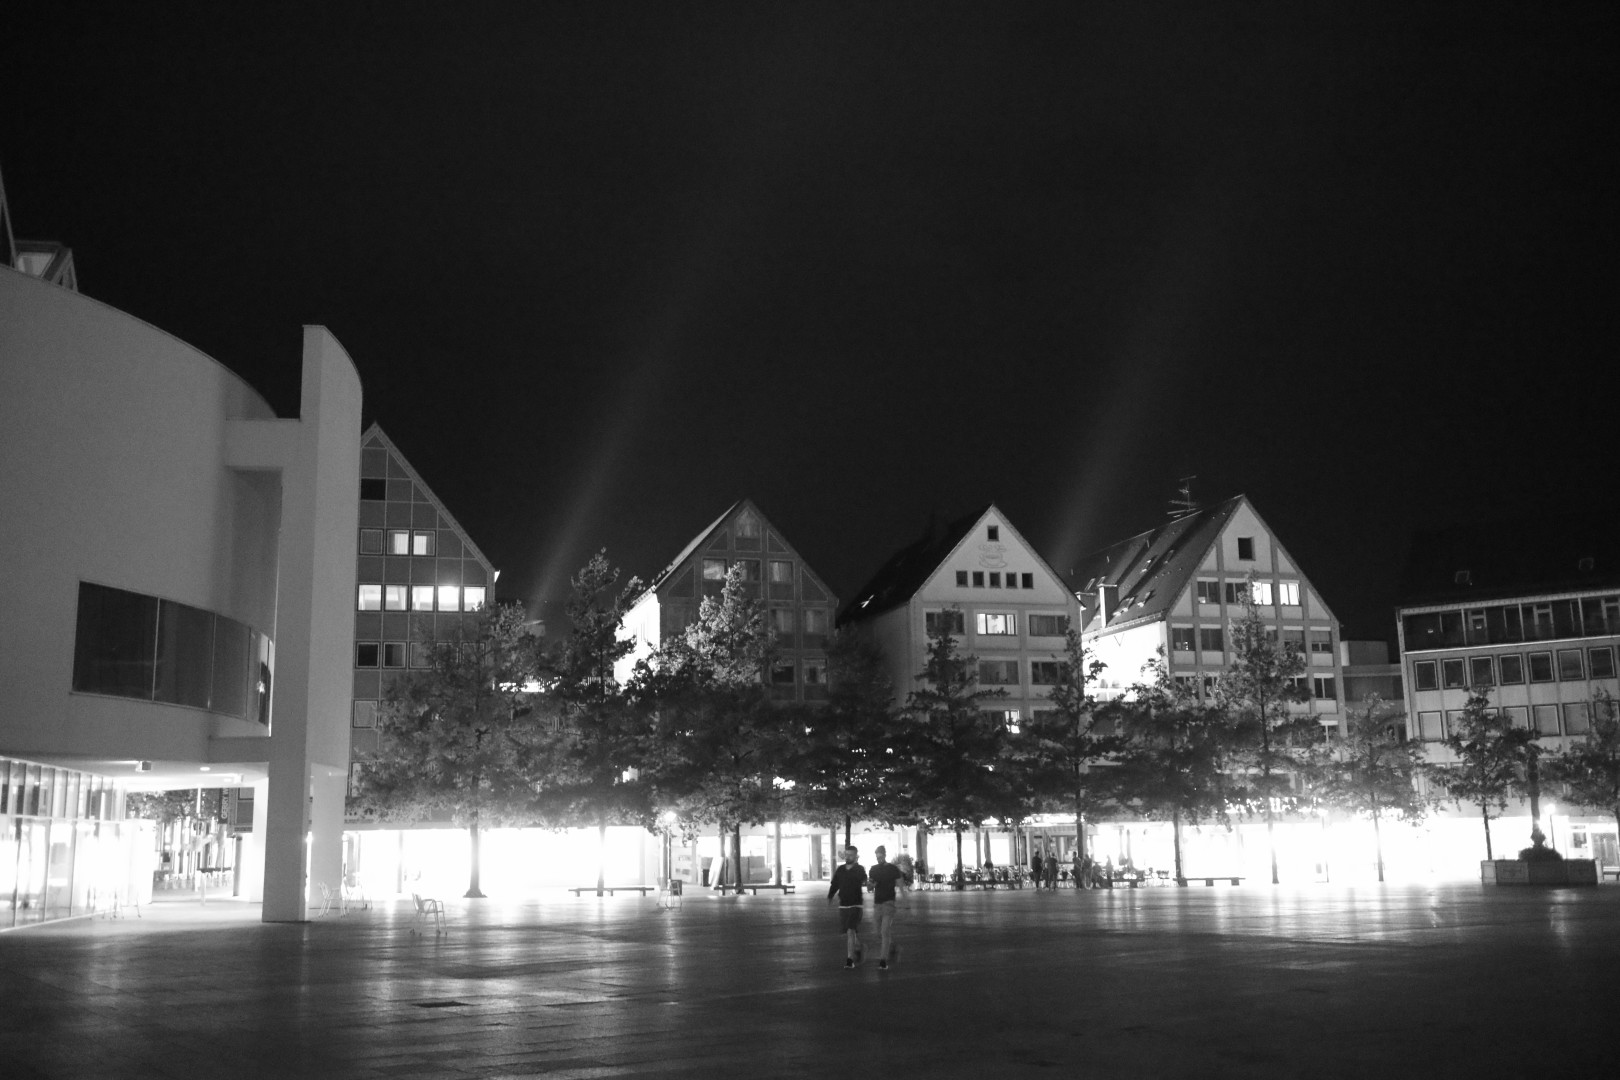 b/w pic of houses at night with lights streaming upwards